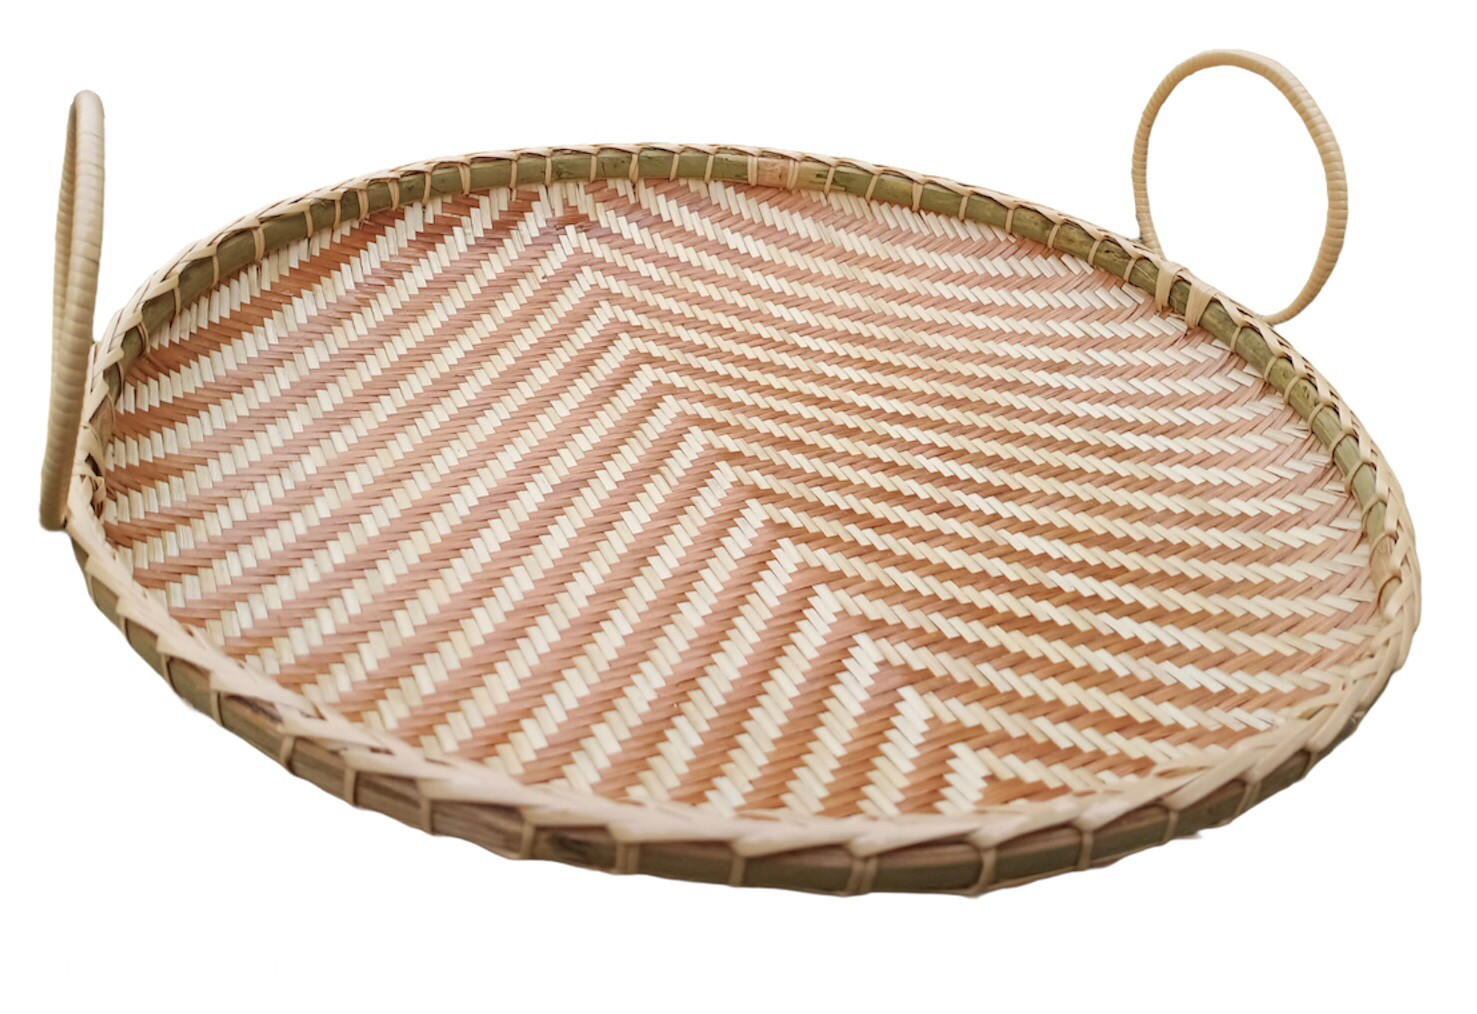 Circle basket Bam boo Strip Brown